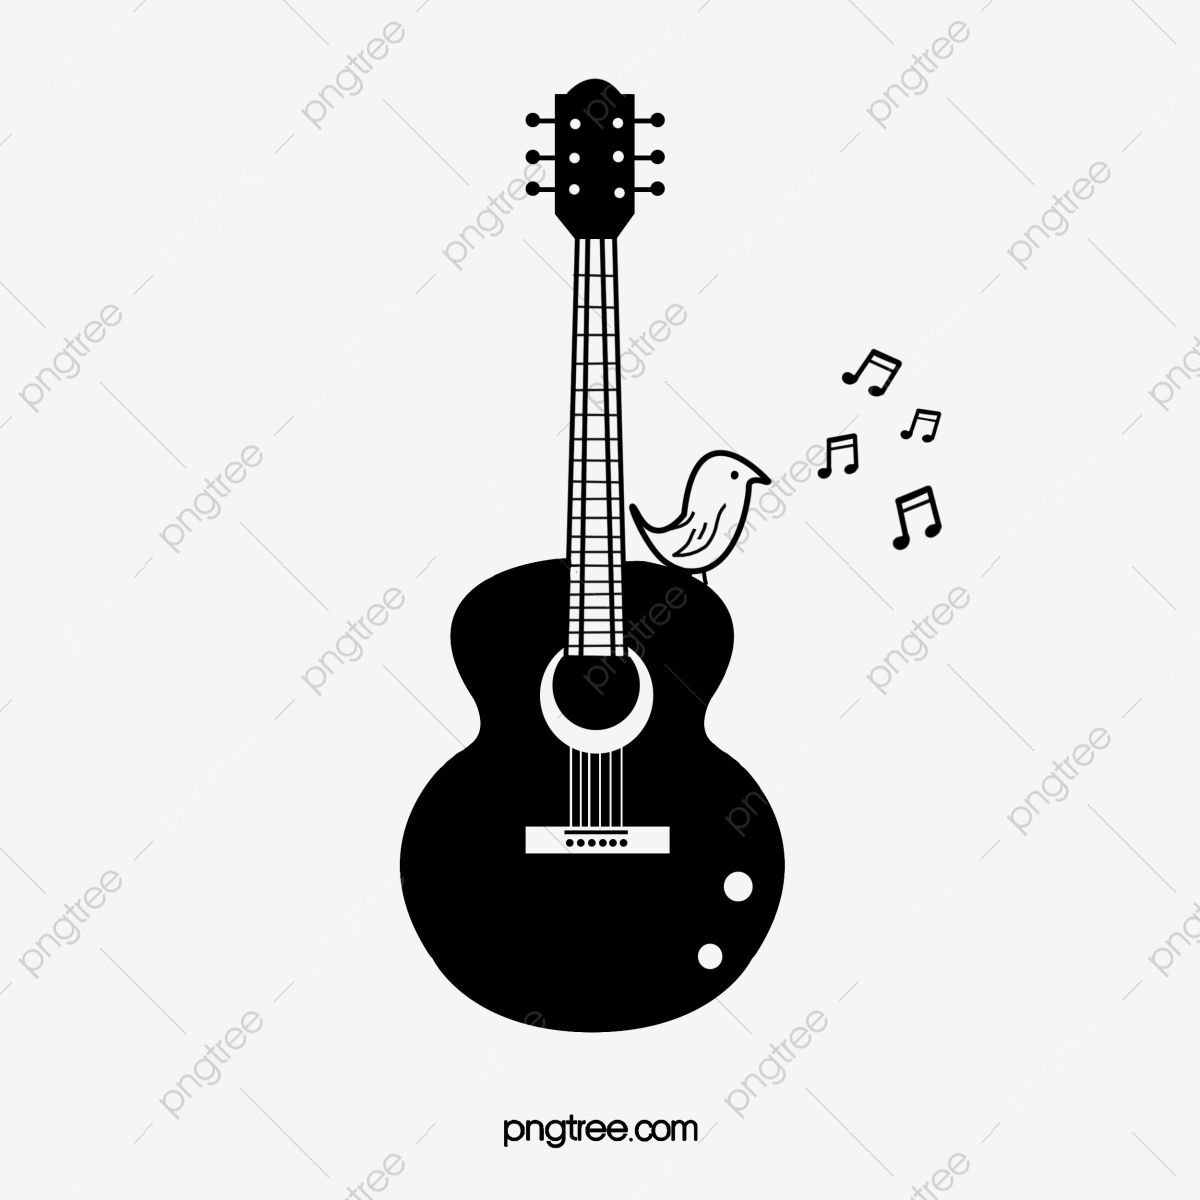 Guitar Guitar Clipart Hand Painted Guitar Cartoon Guitar Png Transparent Clipart Image And Psd File For Free Download In 2021 Guitar Clipart Guitar Painting Guitar